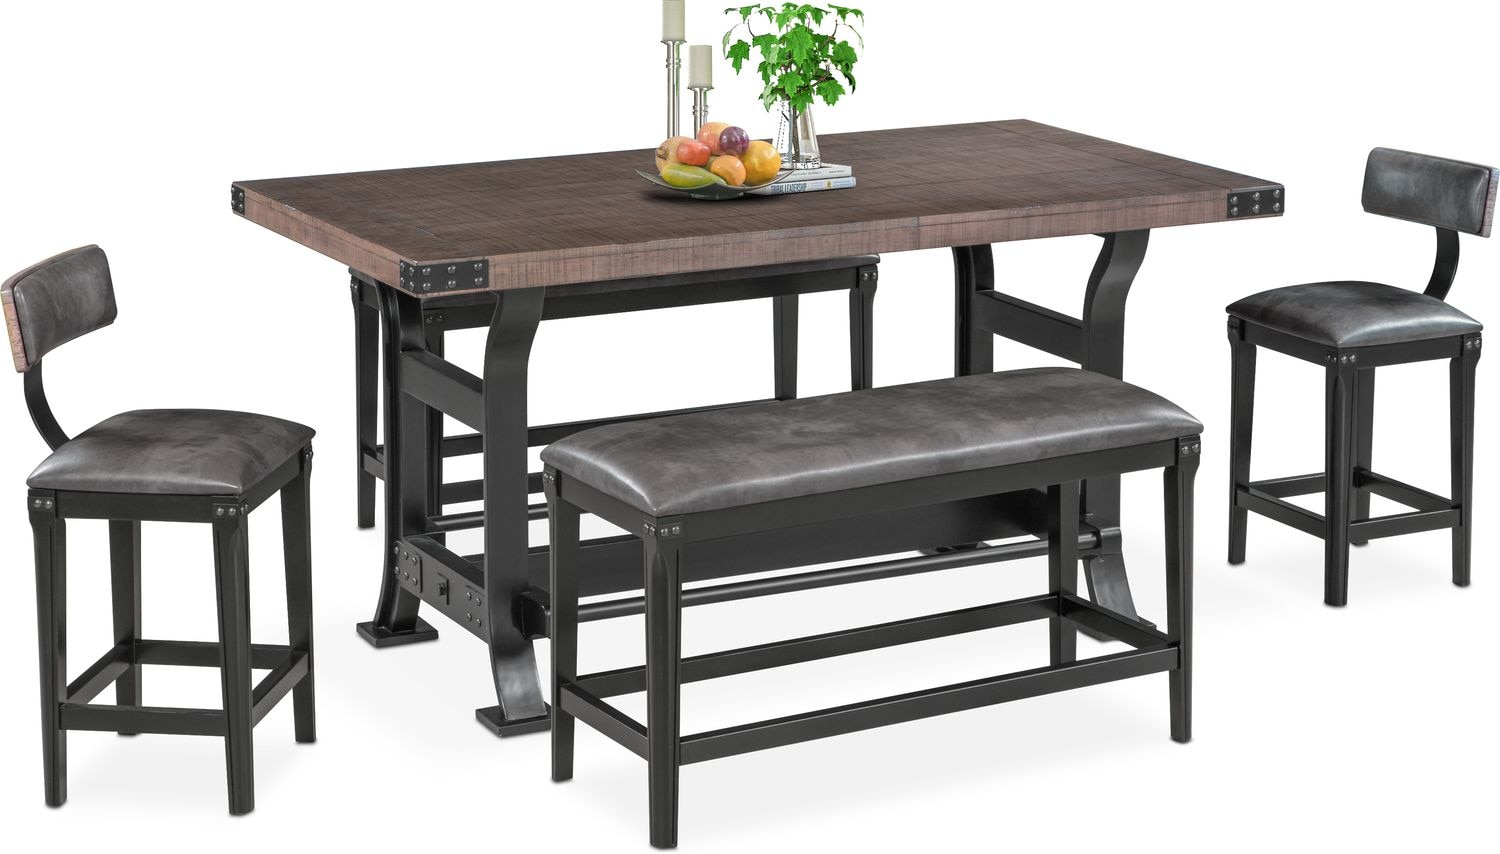 Newcastle Counter Height Dining Table, 2 Stools And 2 Benches   Gray